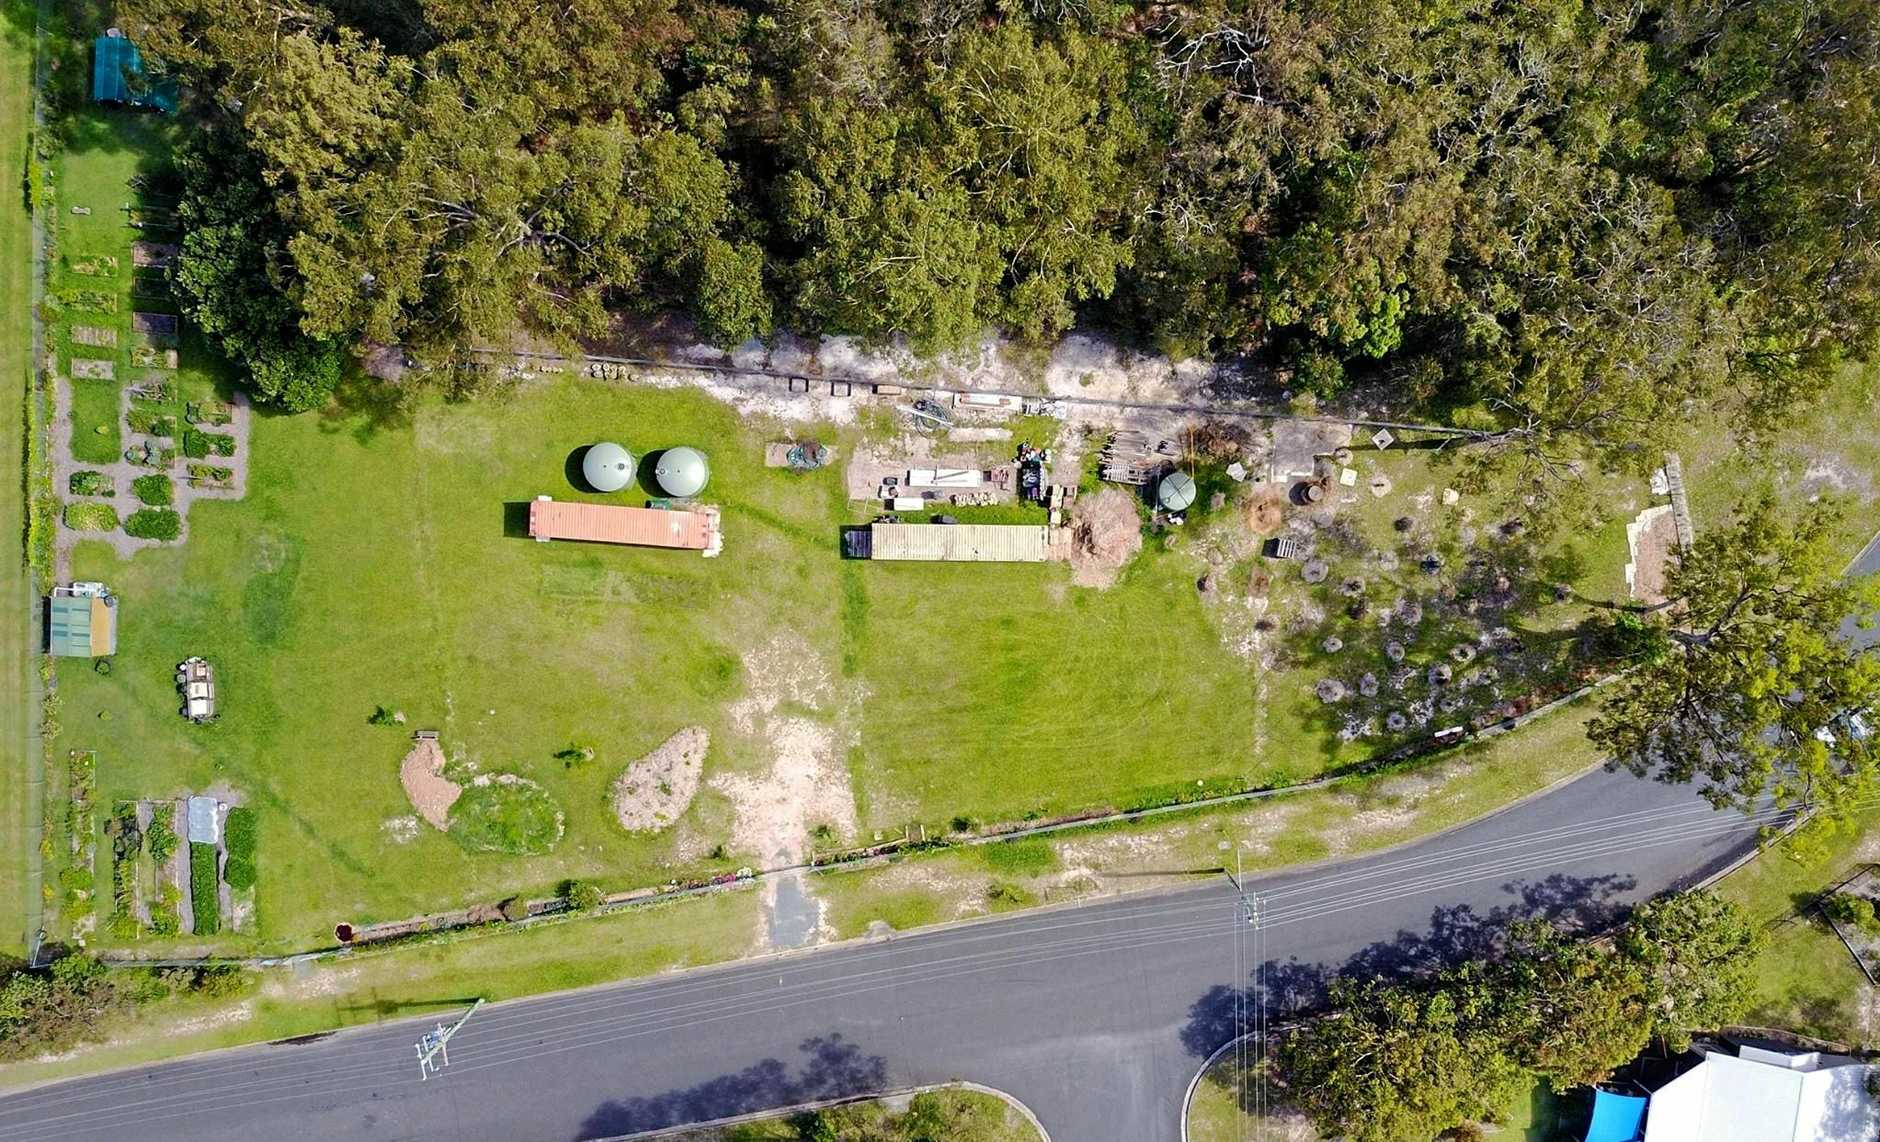 WOOPI Gardens and volunteers have been working hard over the past few months to turn their masterplan and vision into a reality.